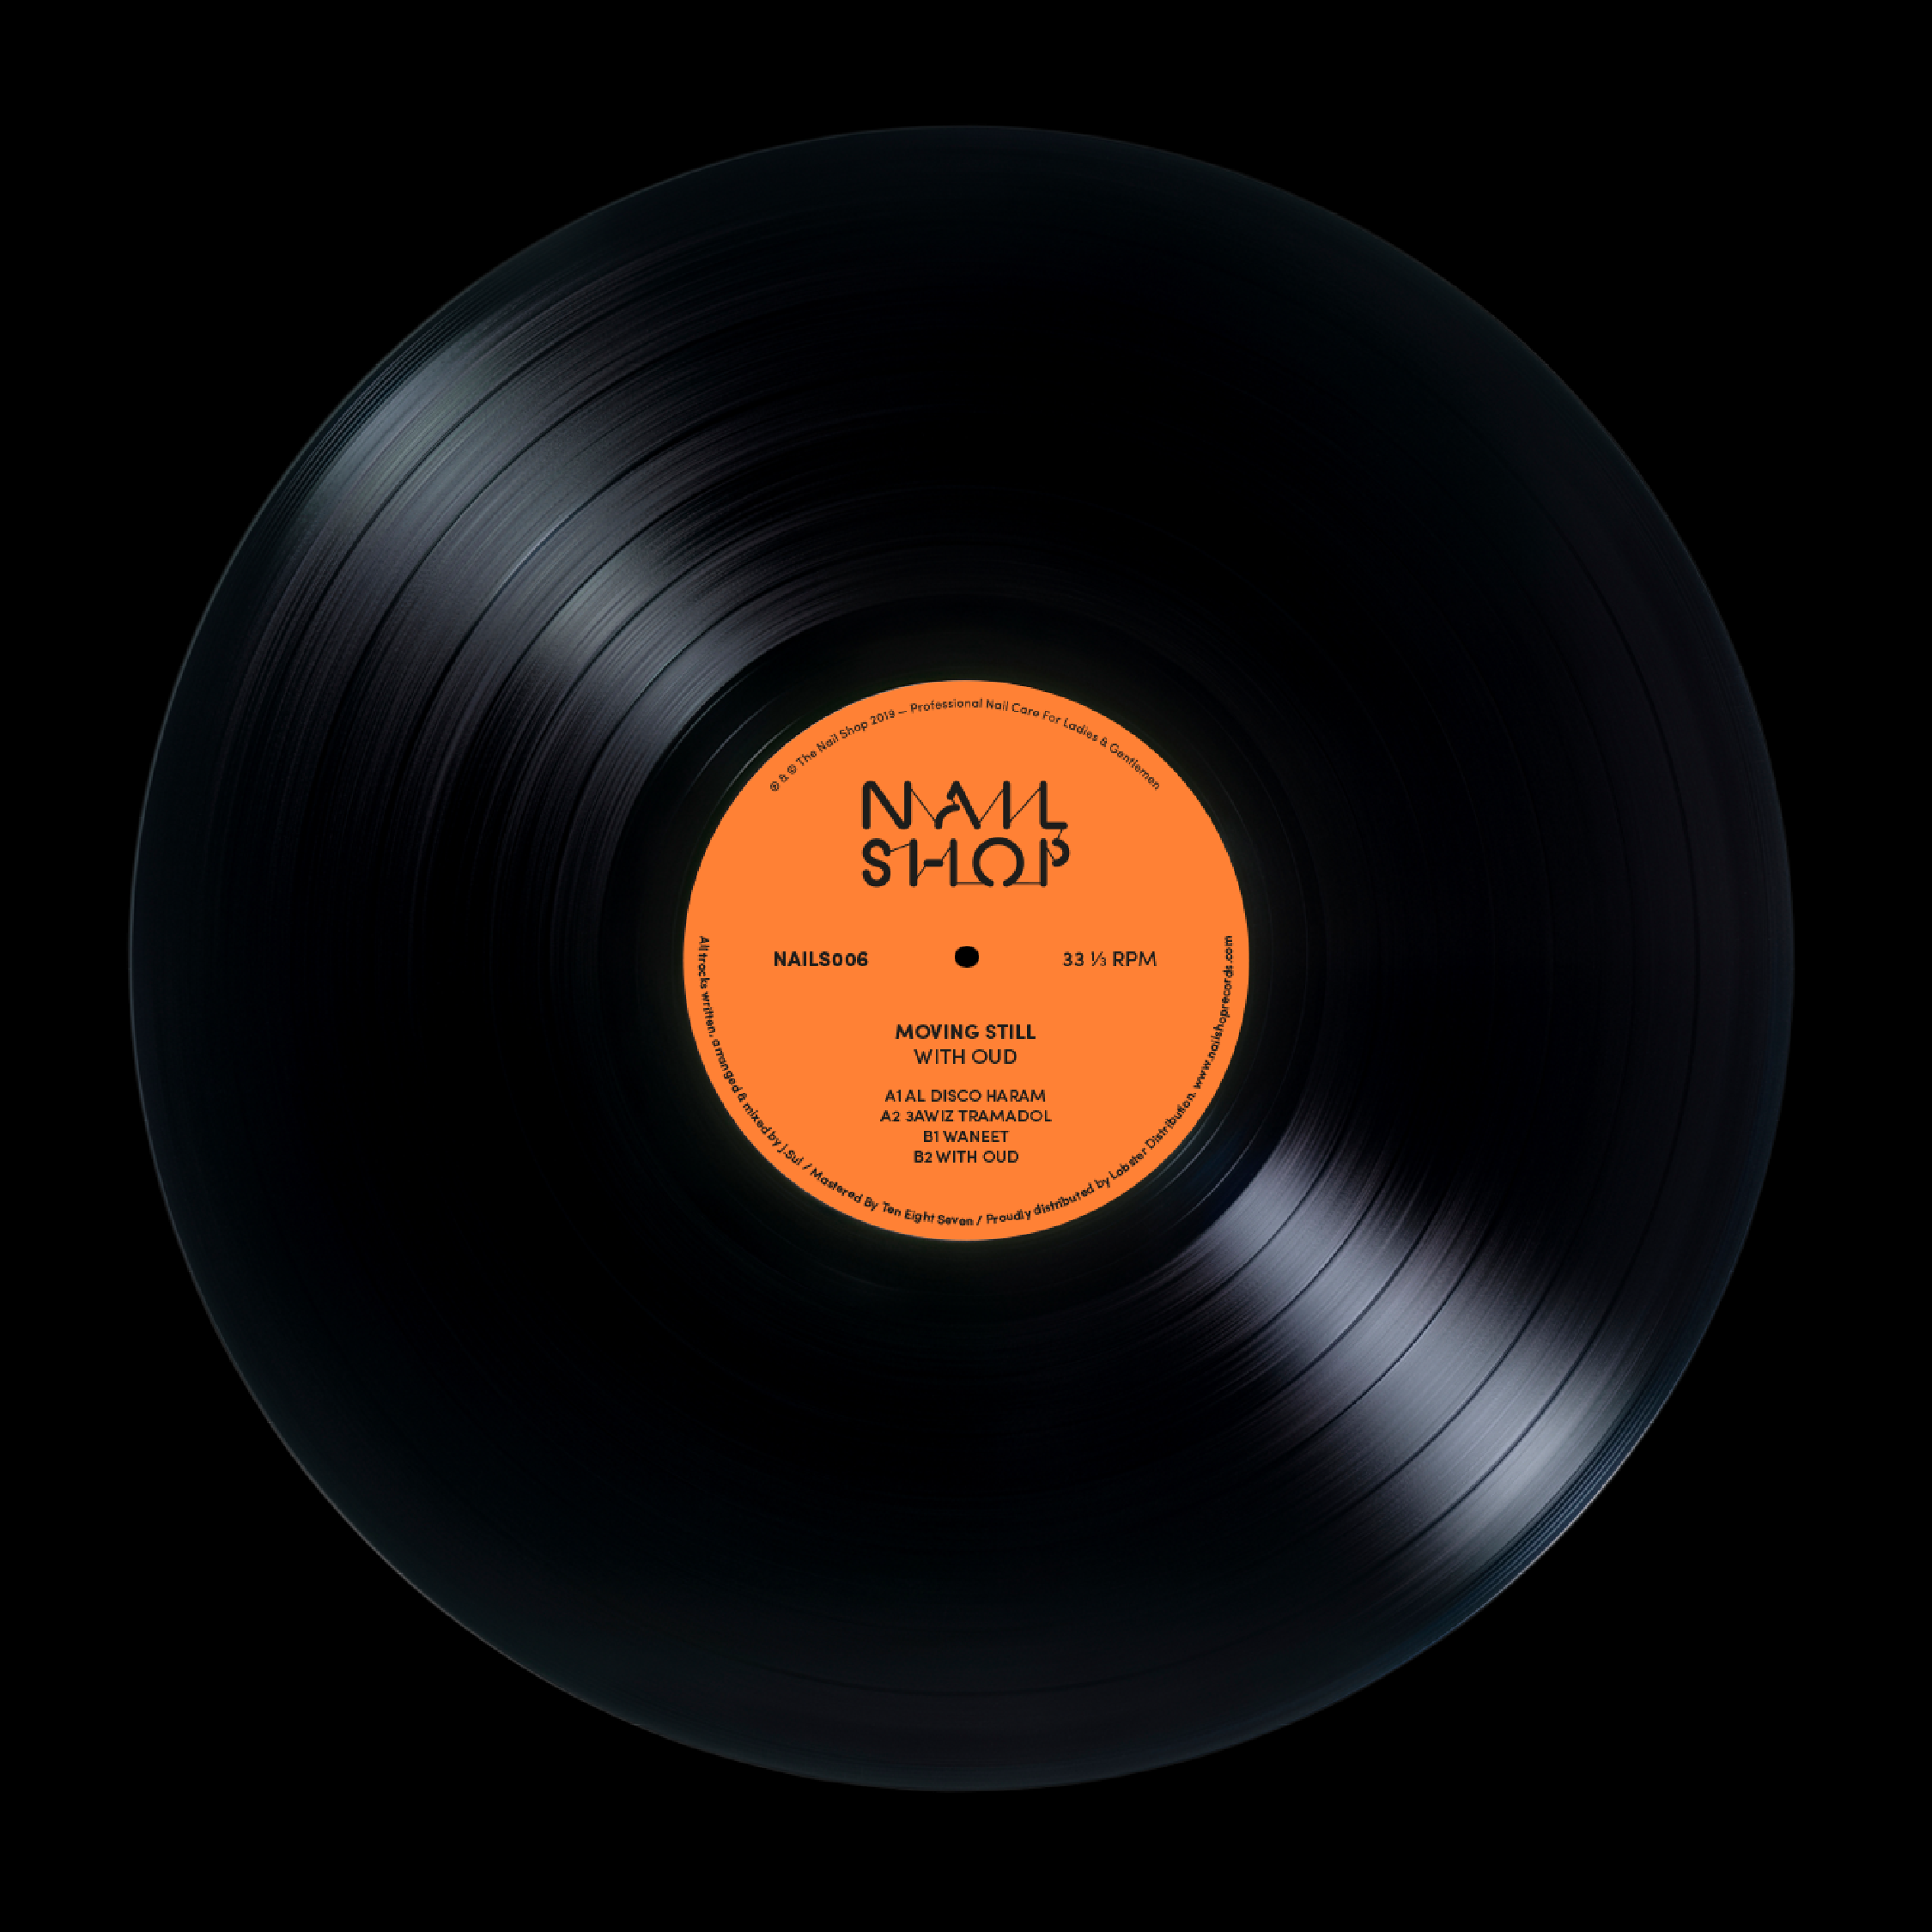 The Nail Shop Records, NS006, Movging Still, Side A